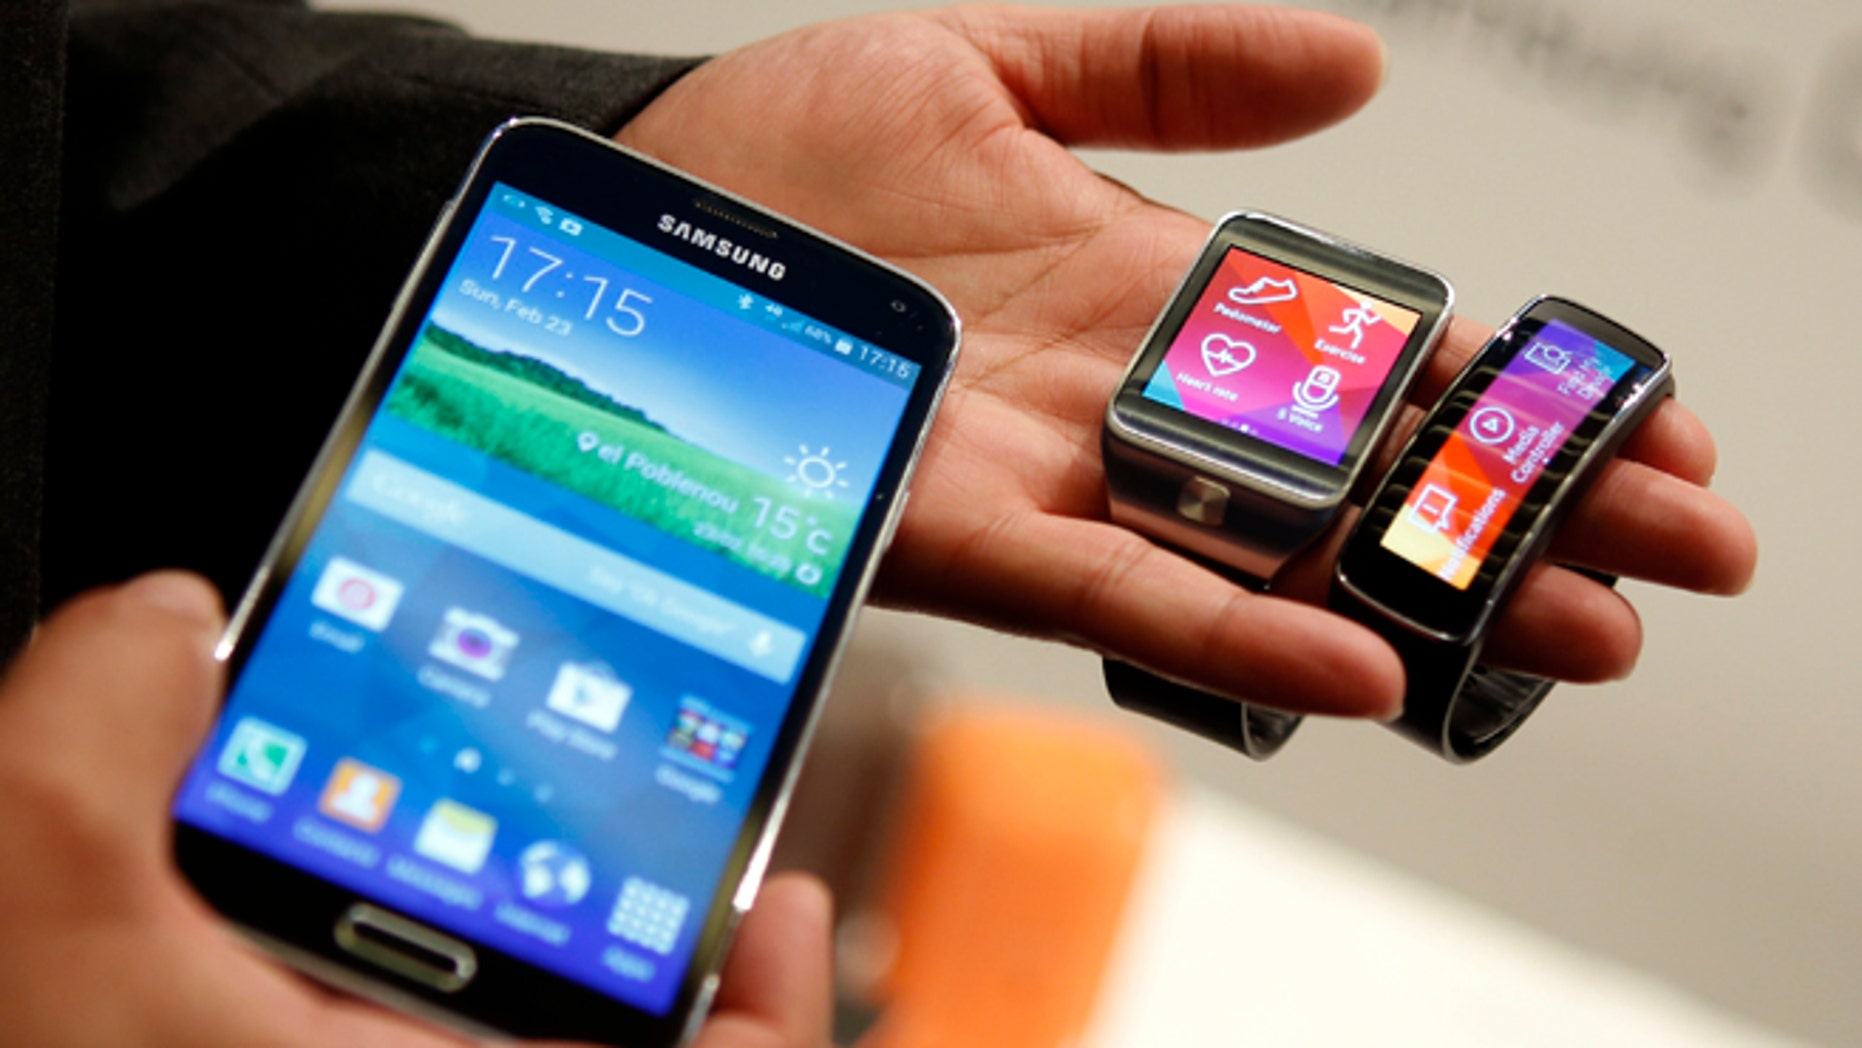 New Samsung Galaxy S5 smartphone (L), Gear 2 smartwatch (C) and Gear Fit fitness band are displayed at the Mobile World Congress in Barcelona.